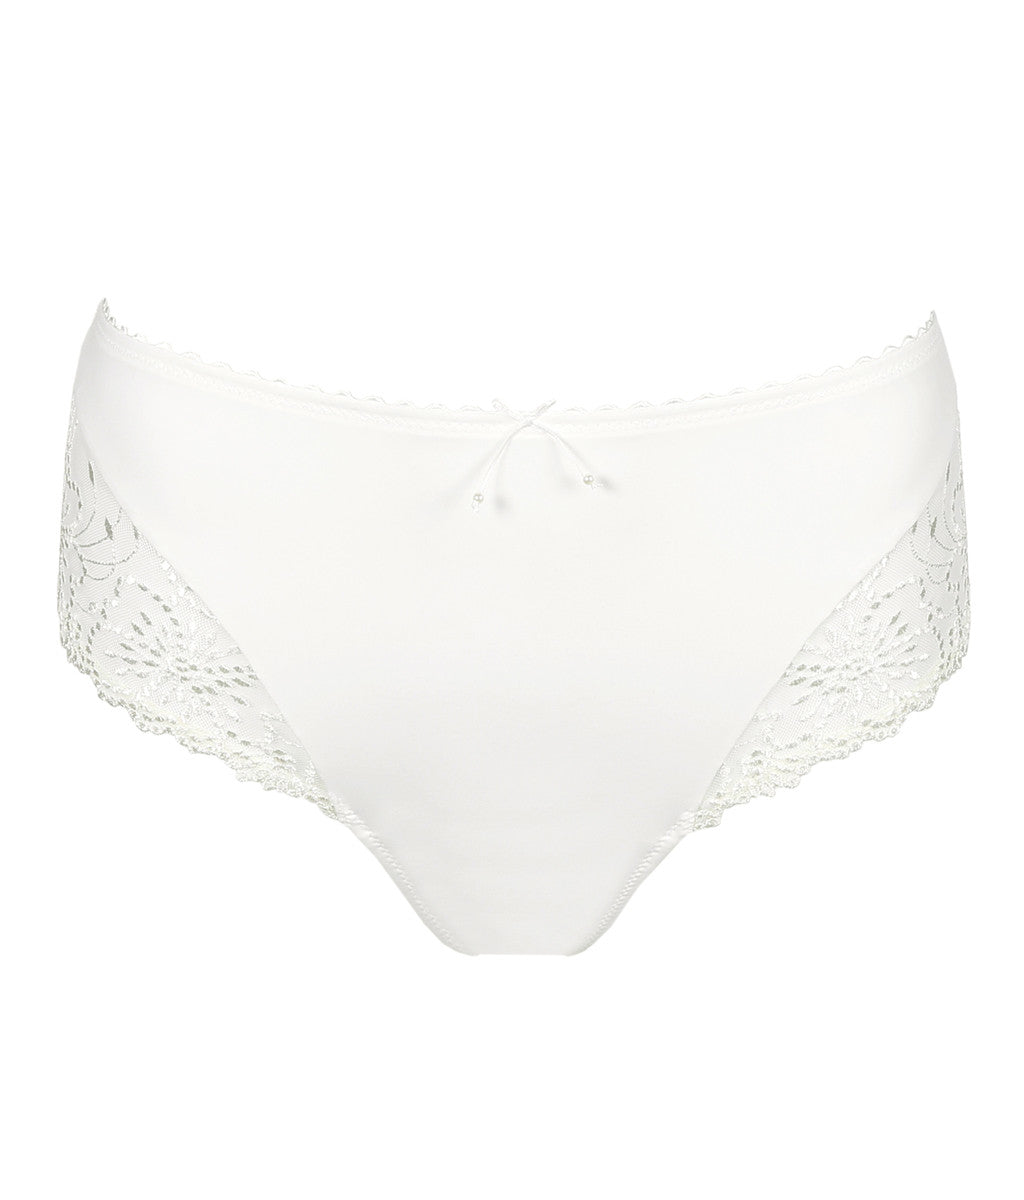 Marie Jo 'Jane' (Natural) Full Brief - Sandra Dee - Product Shot - Front